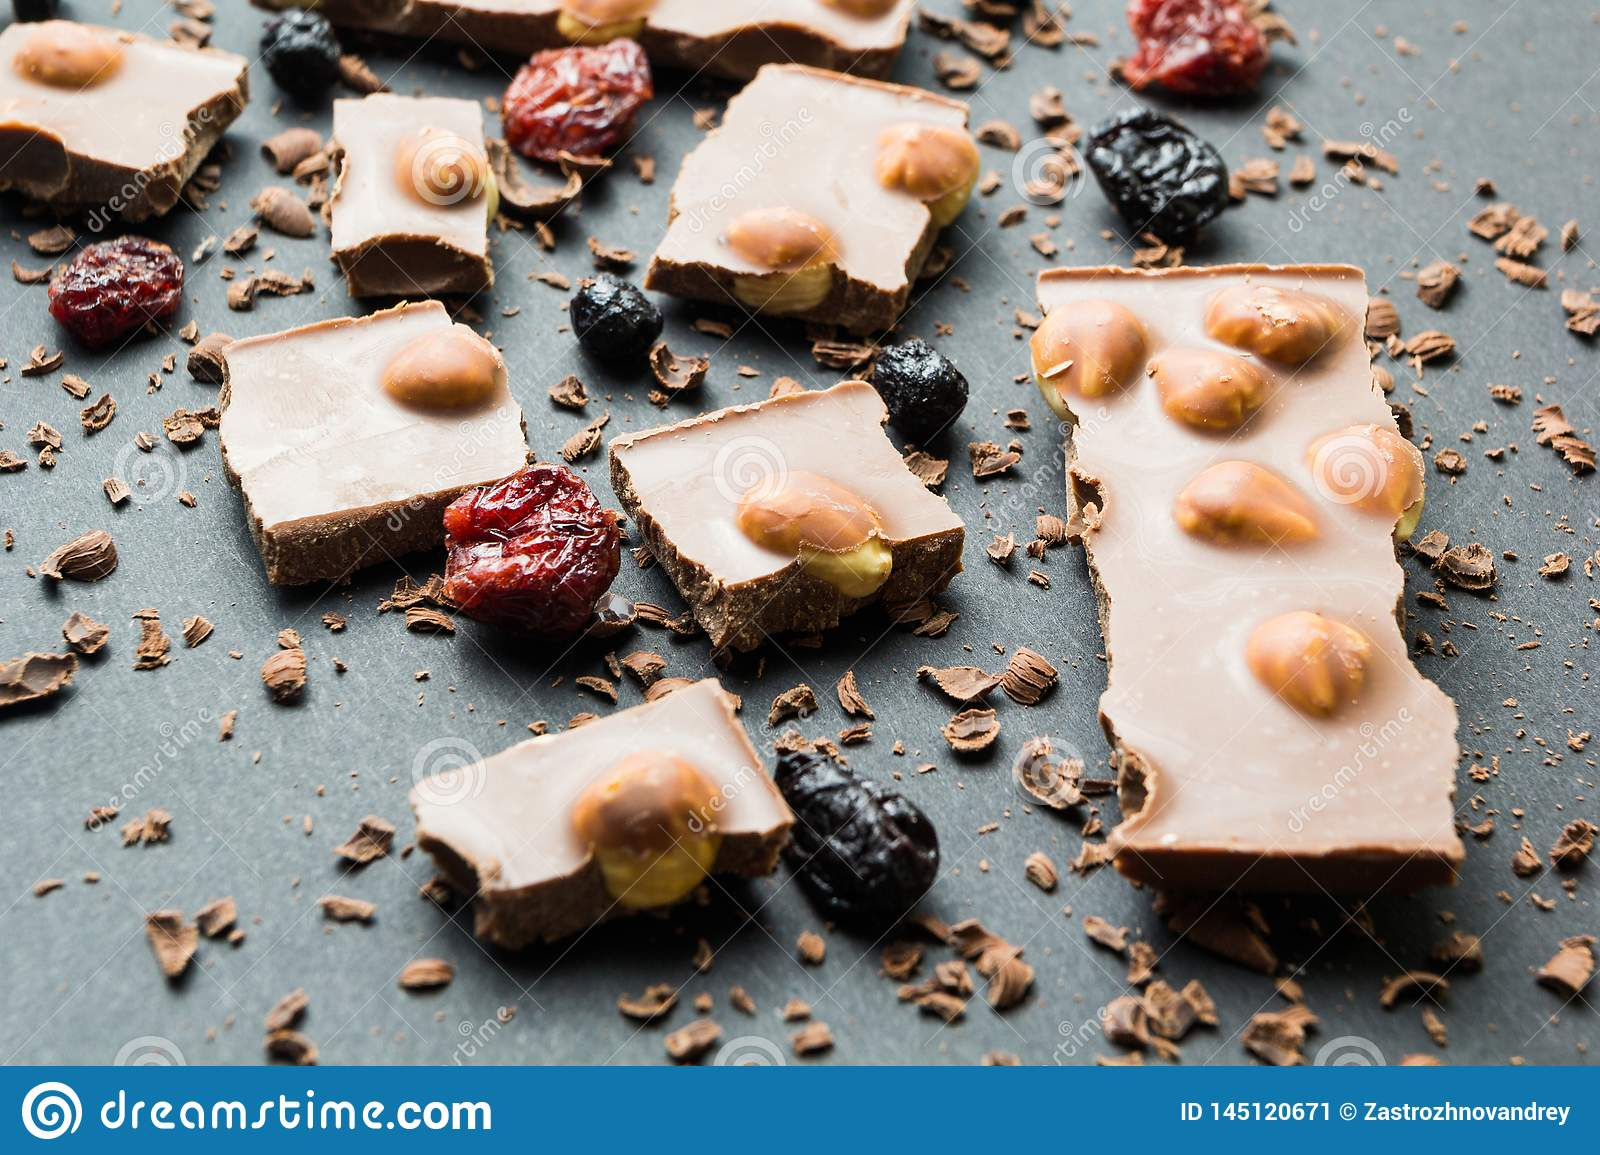 Pieces of dark chocolate with nuts and dried fruits on a background of crumbs